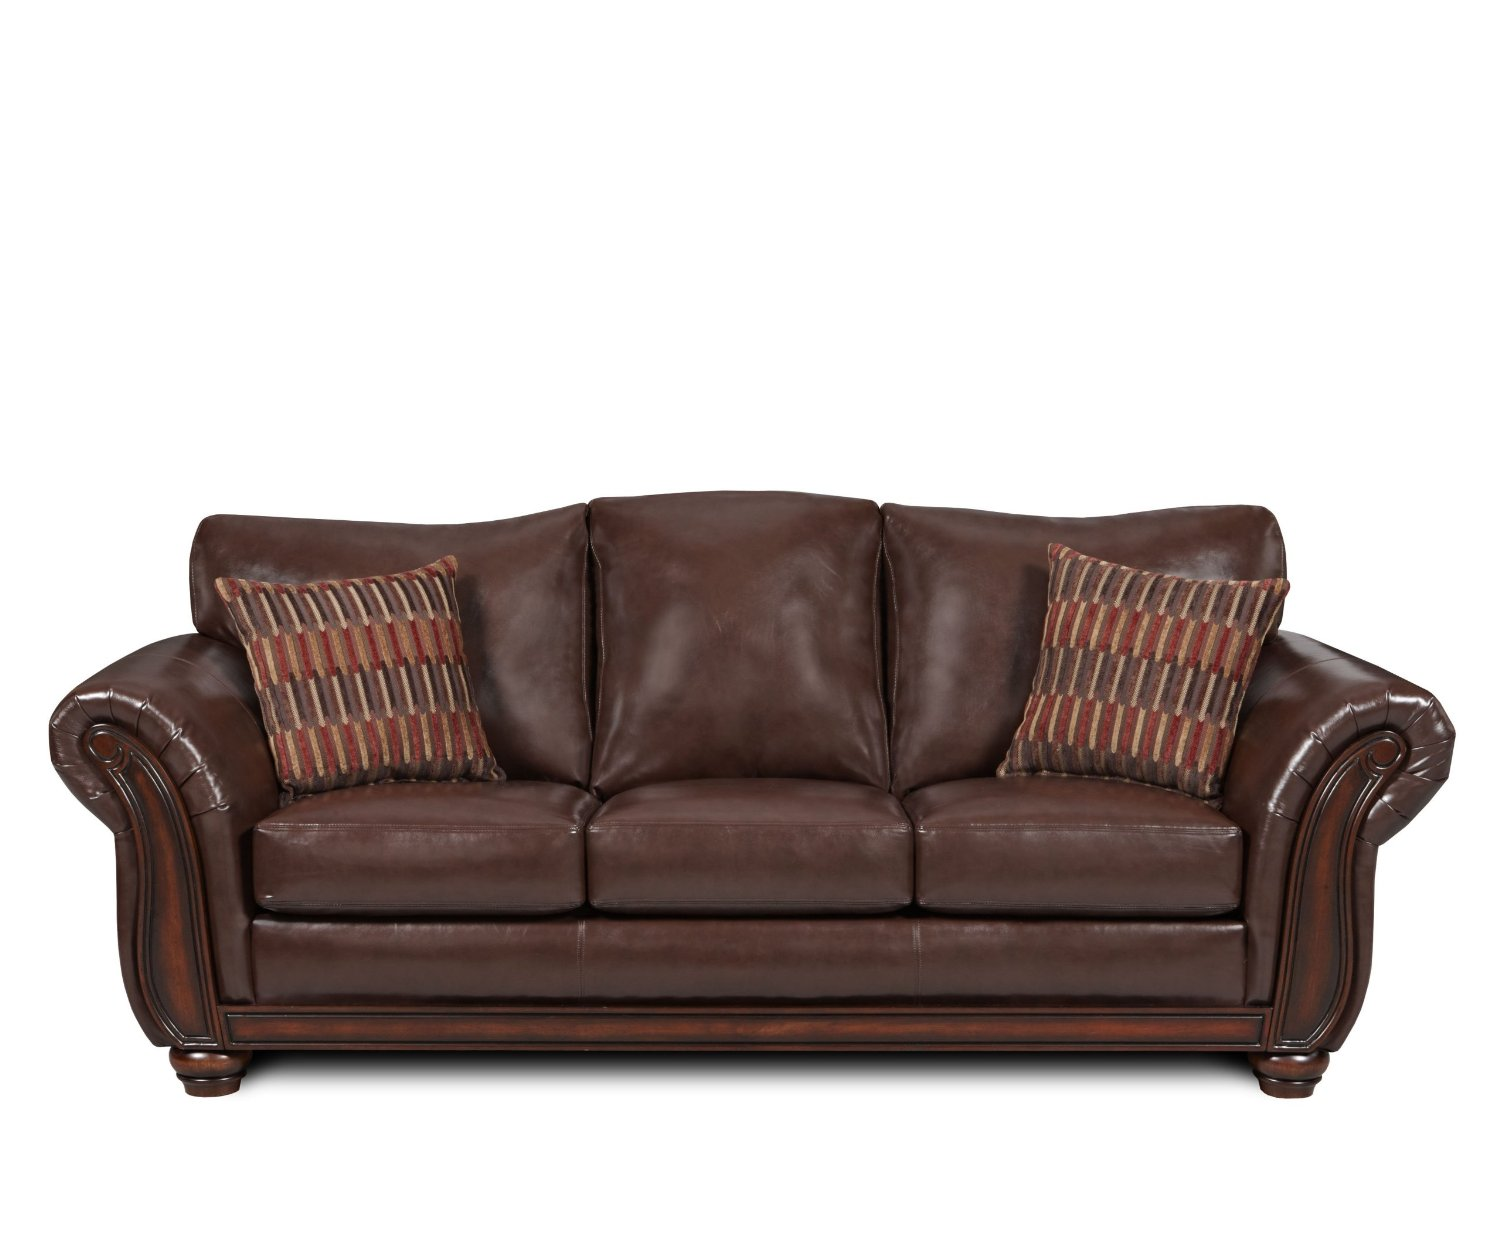 Leather couch furniture guide leather for Furniture leather sofa